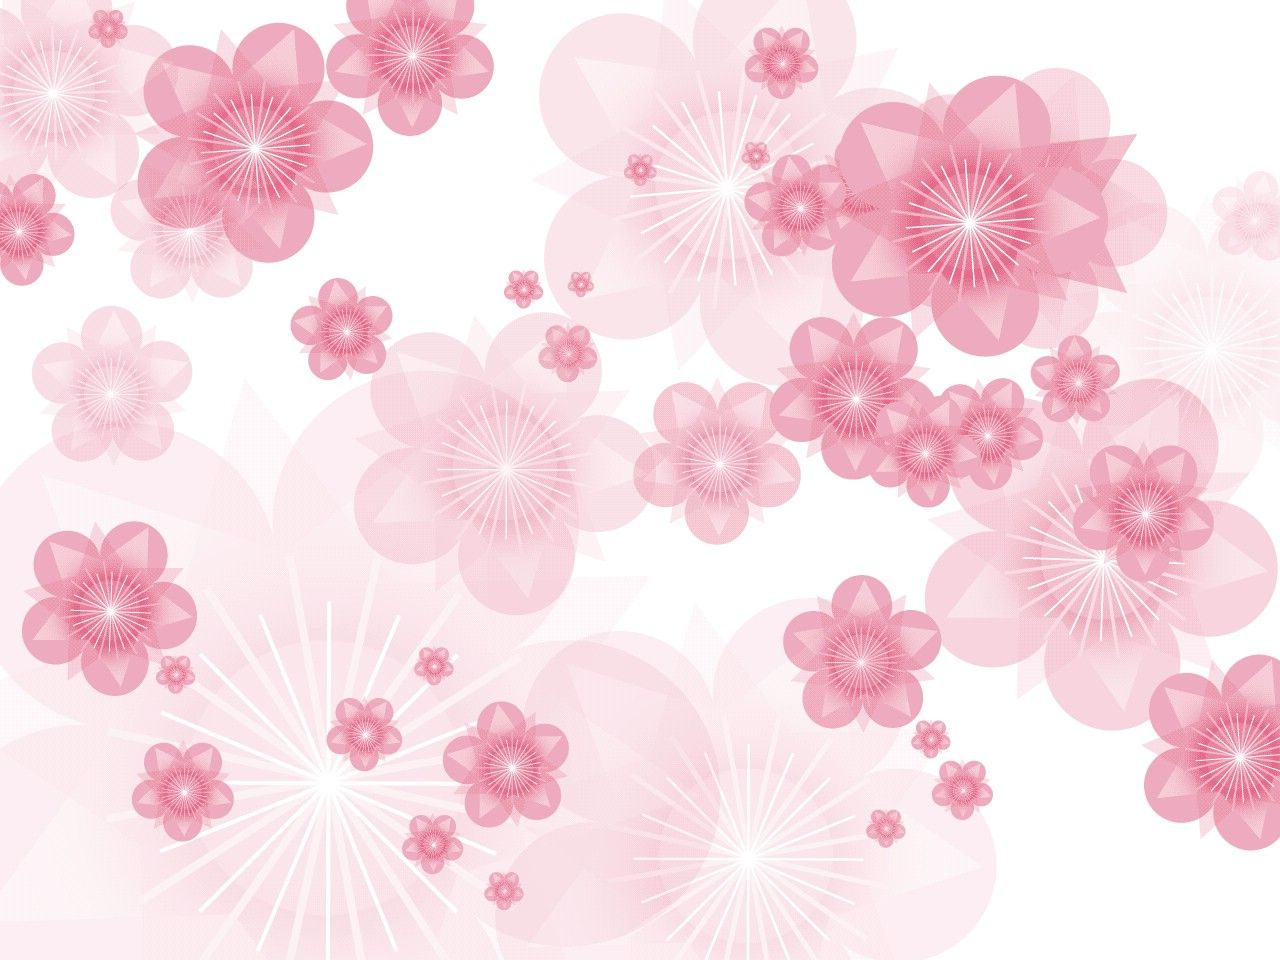 Pink flower background pink flower background pictures pink flower background pink flower background pictures wallpapers cool desktop backgrounds dhlflorist Choice Image